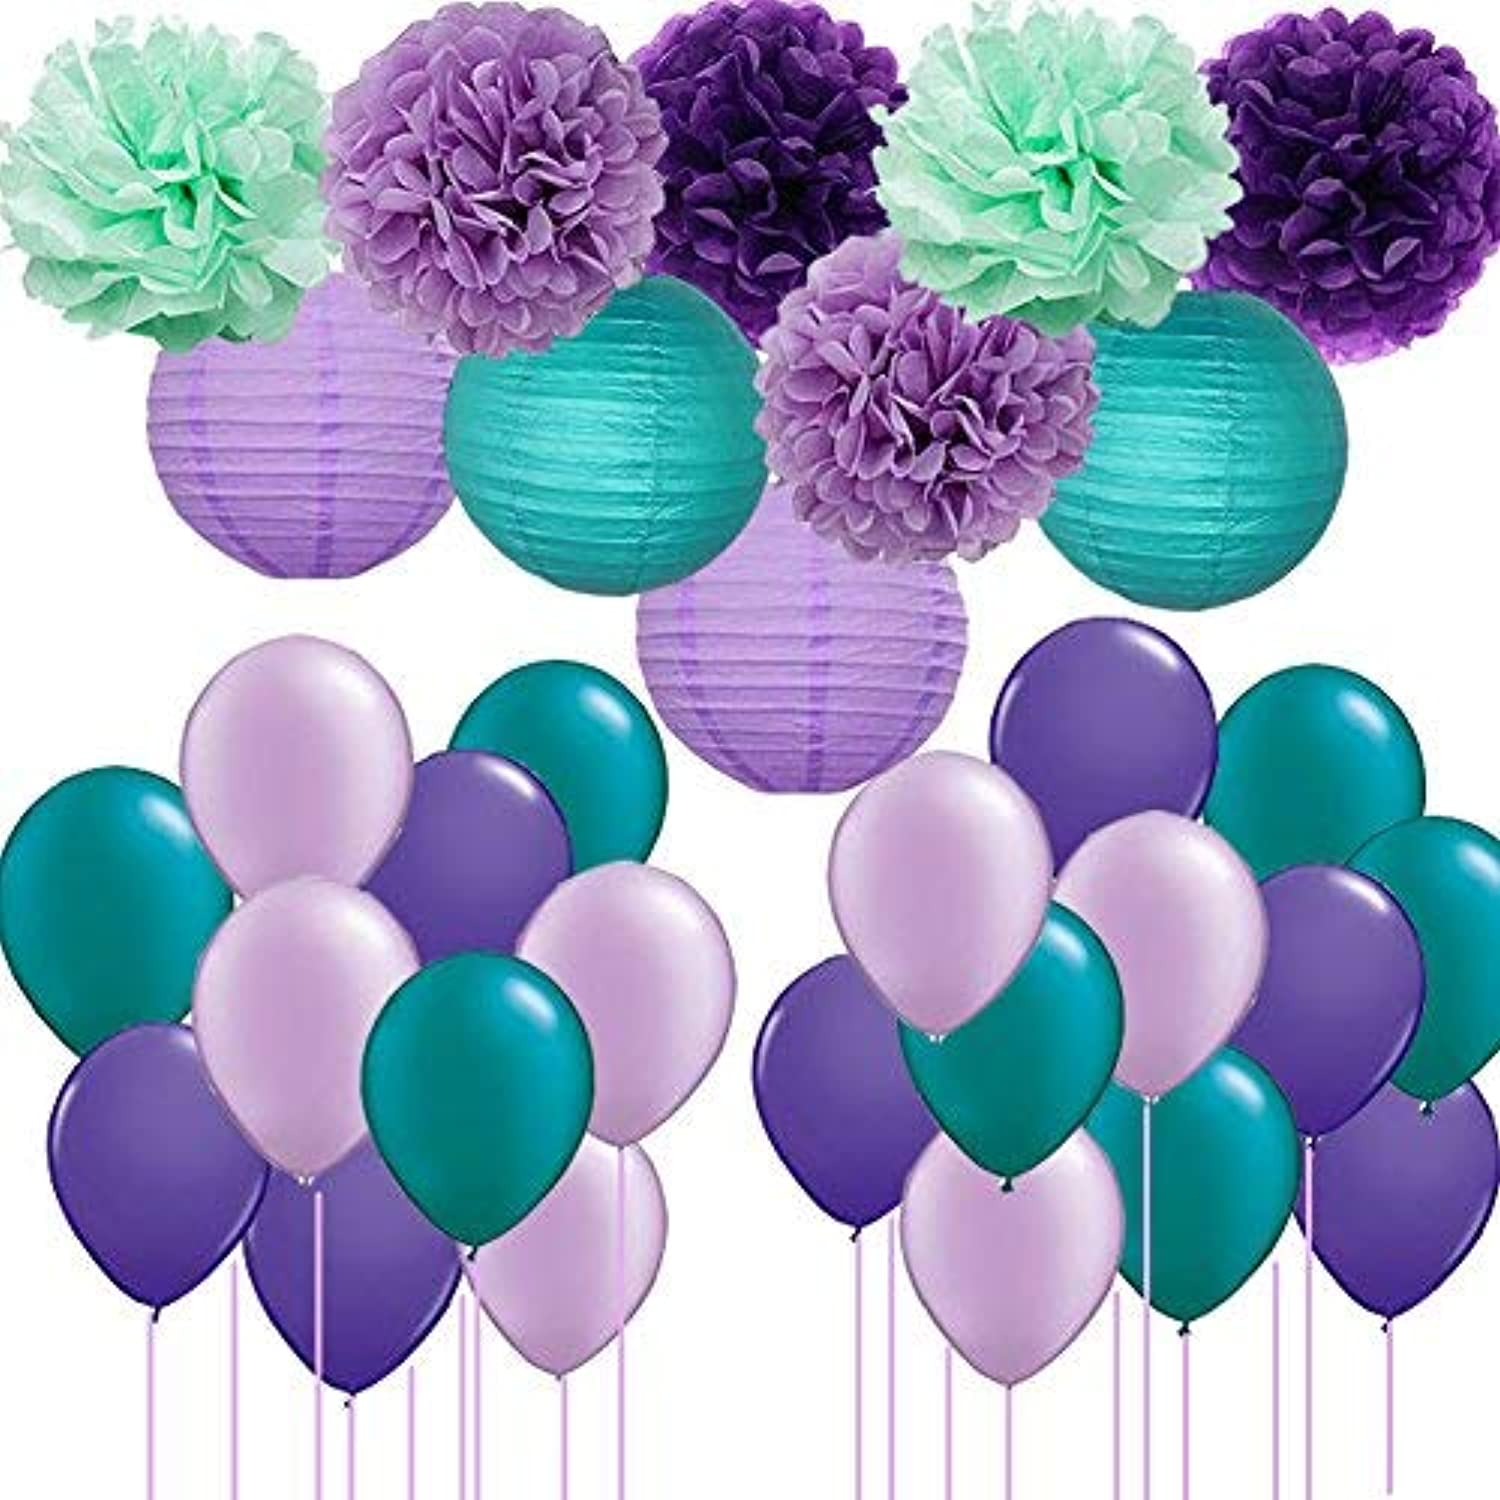 Mermaid Party Supplies/Frozen Party 31pcs Tissue Pom Pom Paper Flowers Paper Lanterns with Balloons for Under The Sea Party The Little Mermaid Baby Shower/Birthday Party Decorations [並行輸入品]